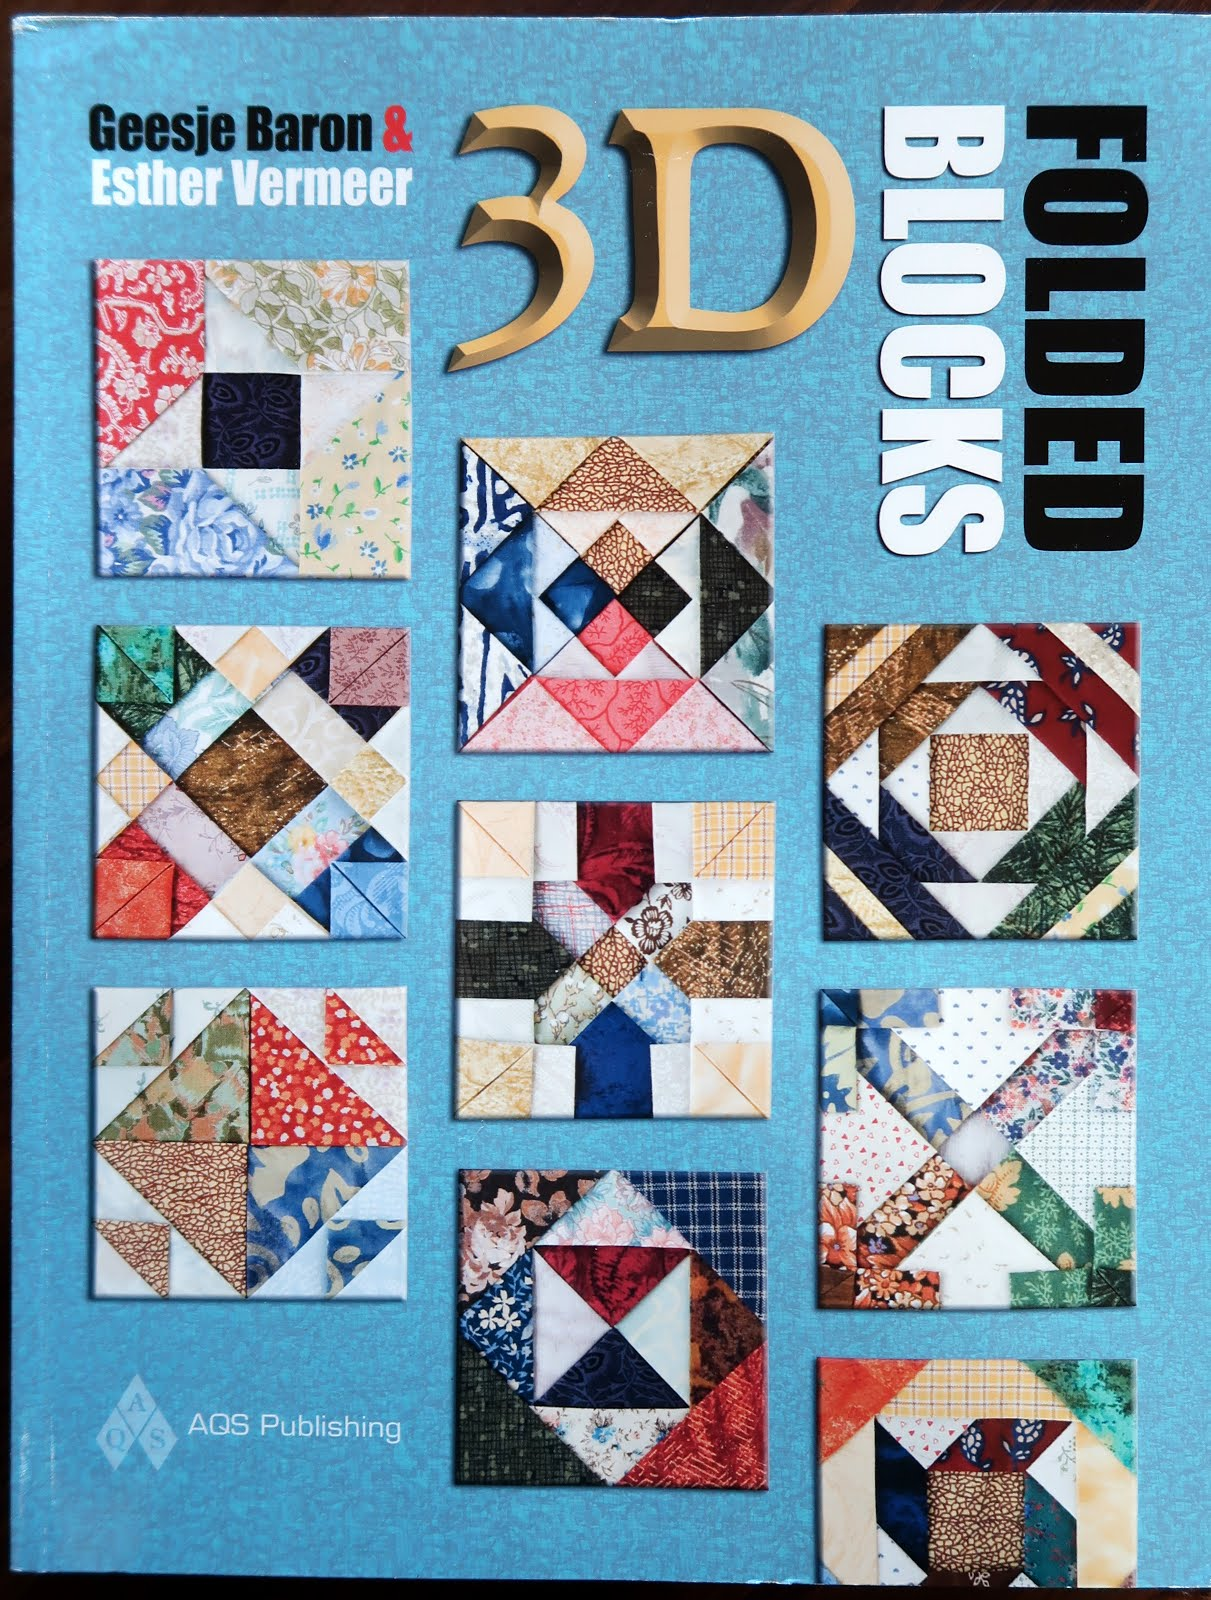 3D Folded Blocks by AQS (CLICK!)